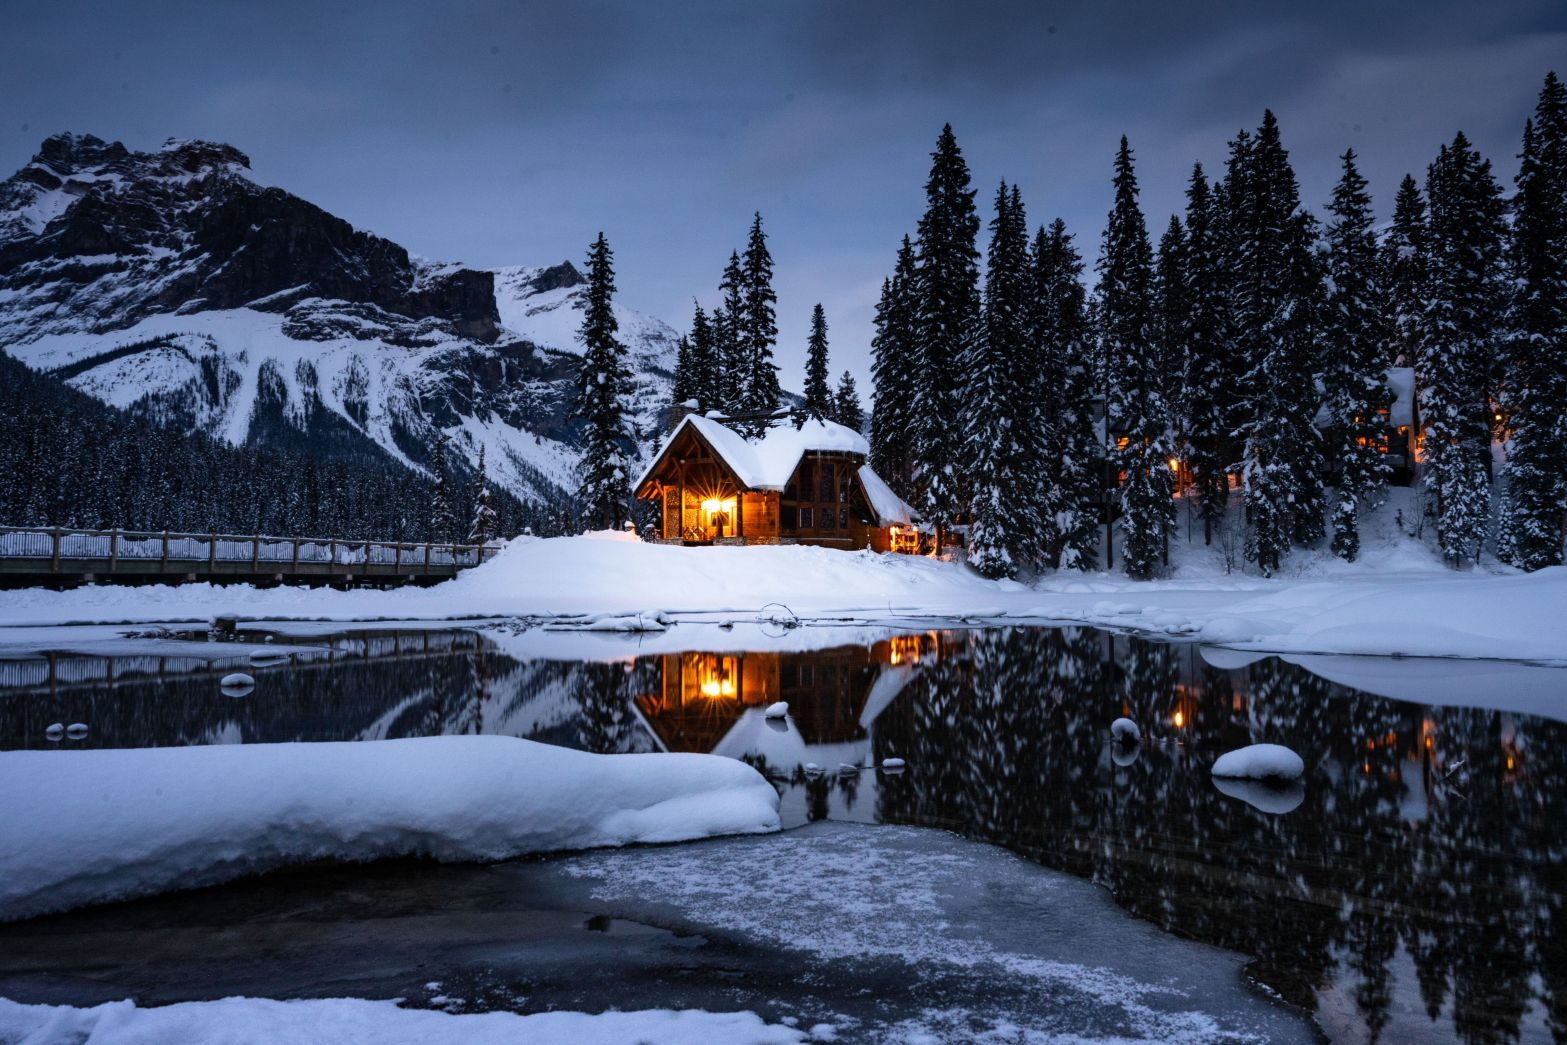 Emerald Lake with Mirrored Cabin At Dusk